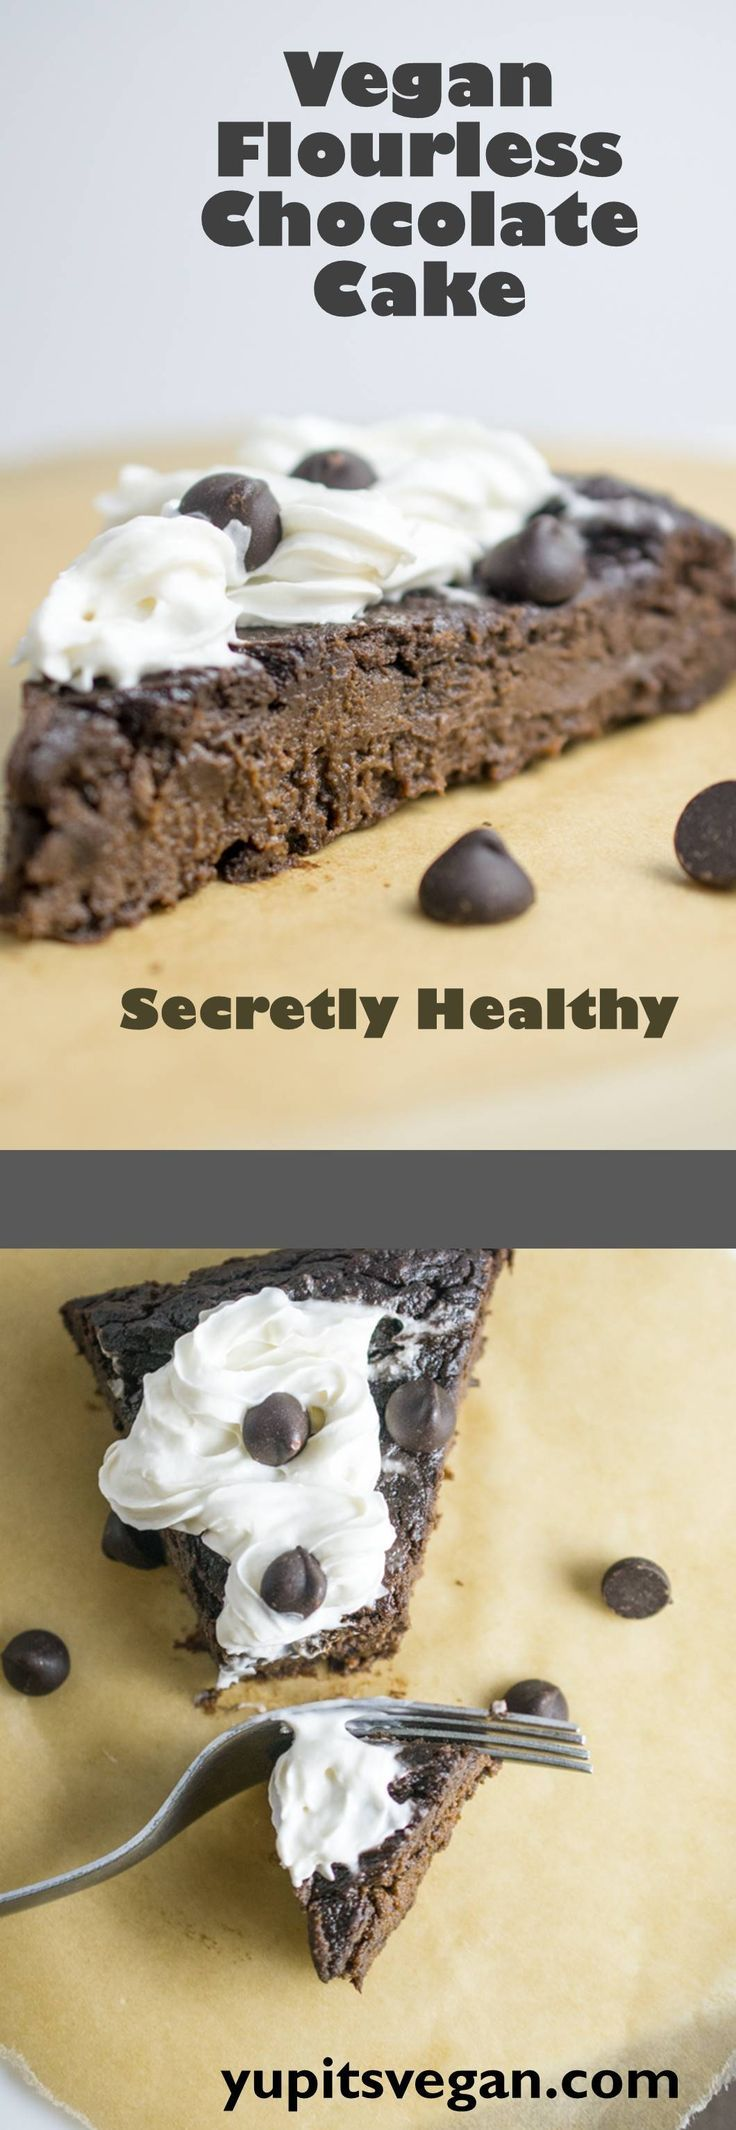 Magical Flourless Chocolate Cake | Yup, it's Vegan. Dairy-free, egg-free flourless cake me with 3 crazy ingredients! A decadent, fudgy dark chocolate delight.